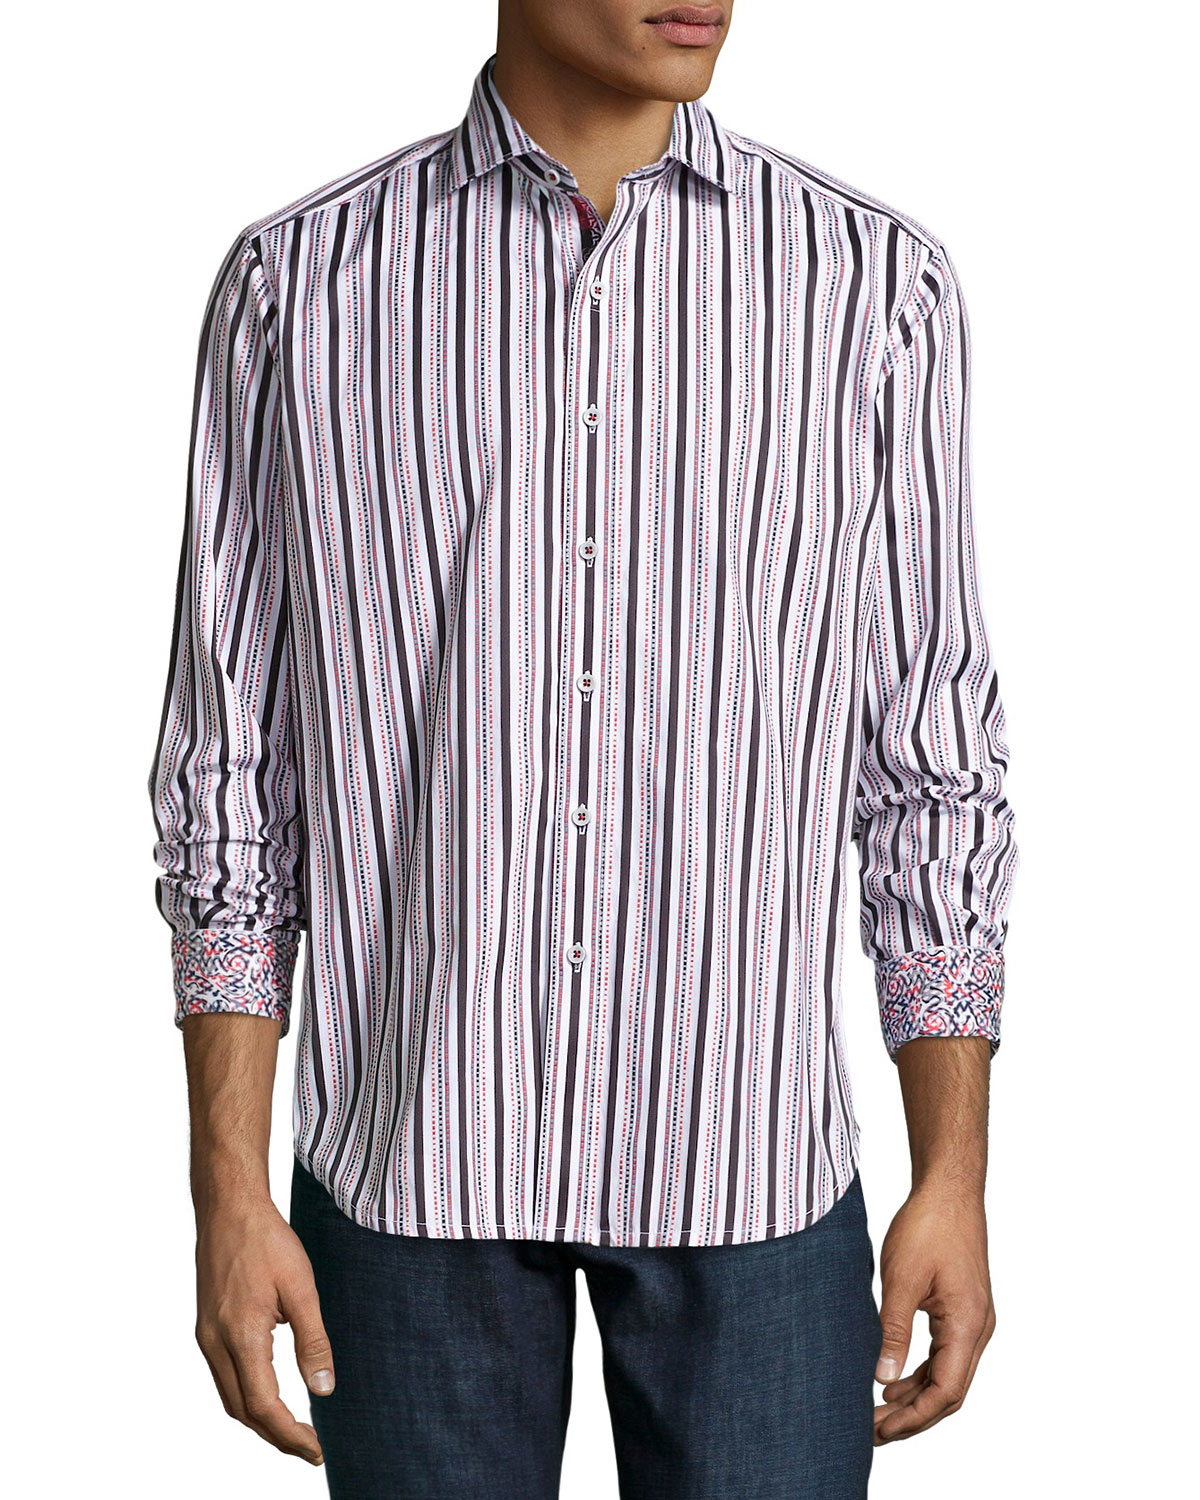 Lyst robert graham multi striped woven sport shirt in for Where are robert graham shirts made